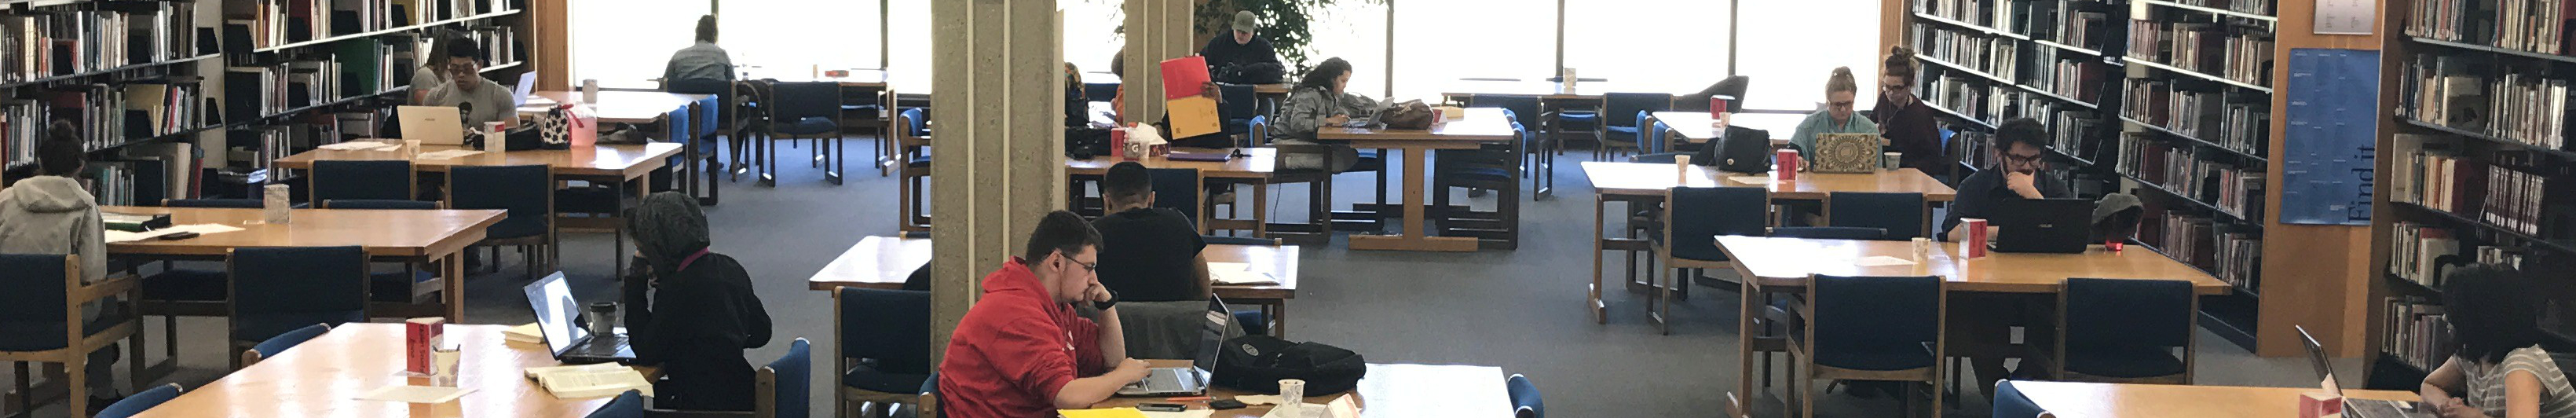 Students Studying in the Library (photo)